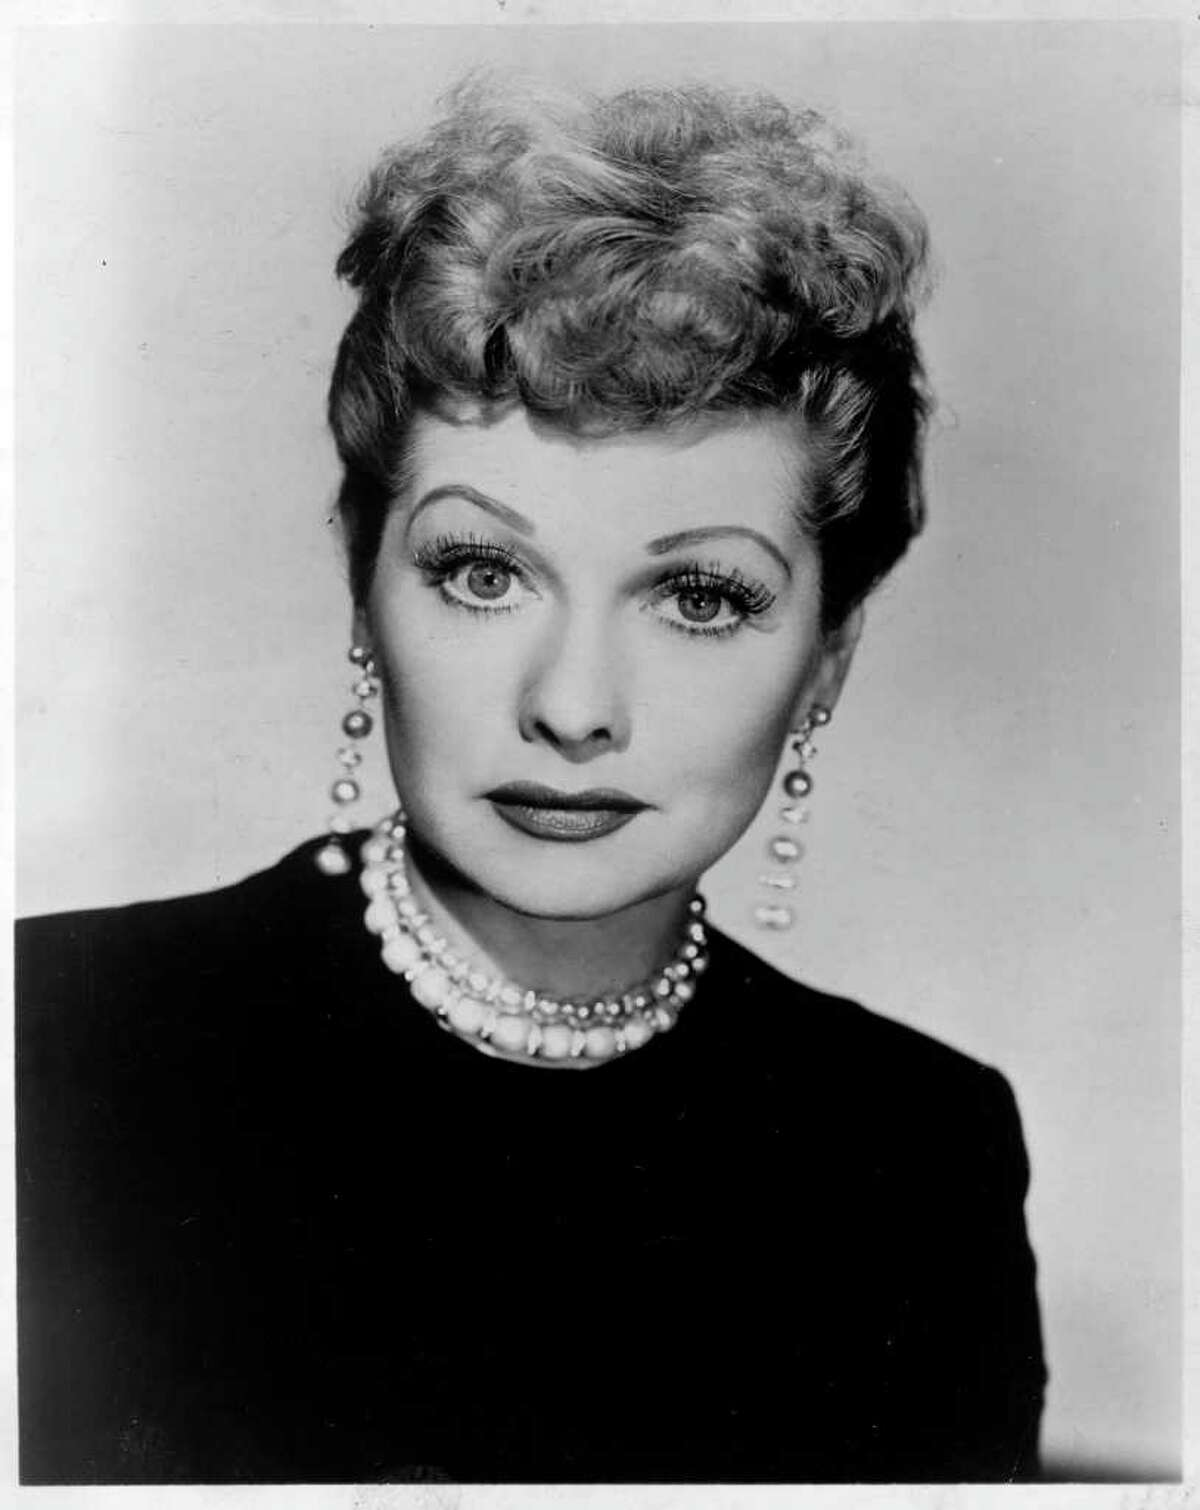 Lucille Ball (1911-1989) was, among many things, an actress, comedian and television star best known for her sitcom I Love Lucy. She is buried at Lake View Cemetery in Jamestown, NY.